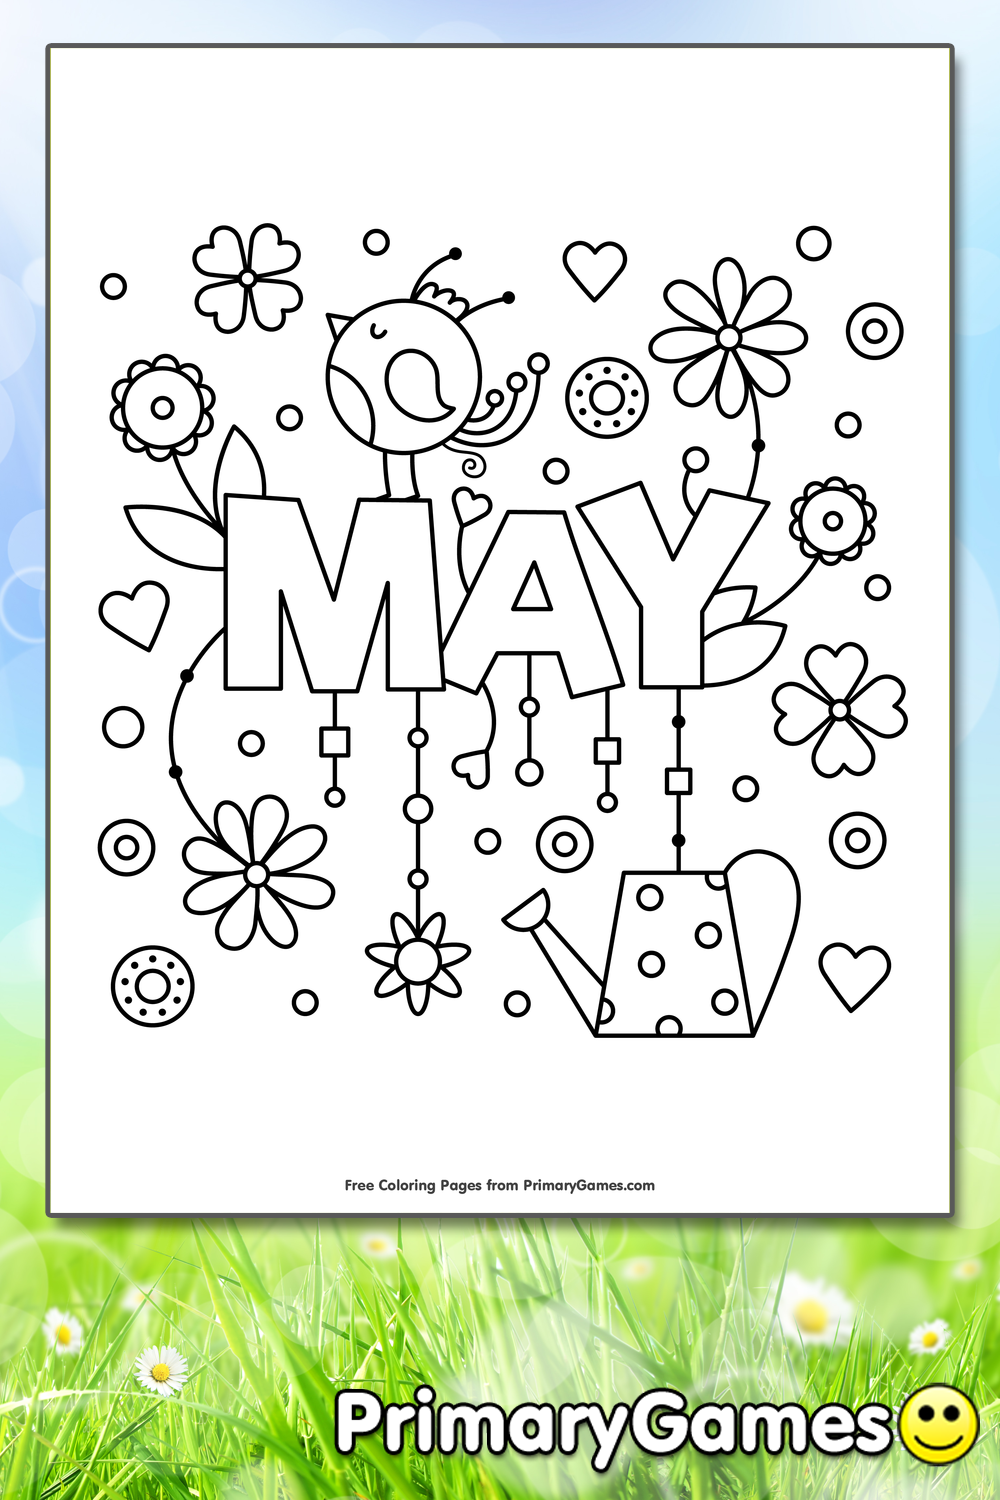 May Coloring Page Free Printable Pdf From Primarygames